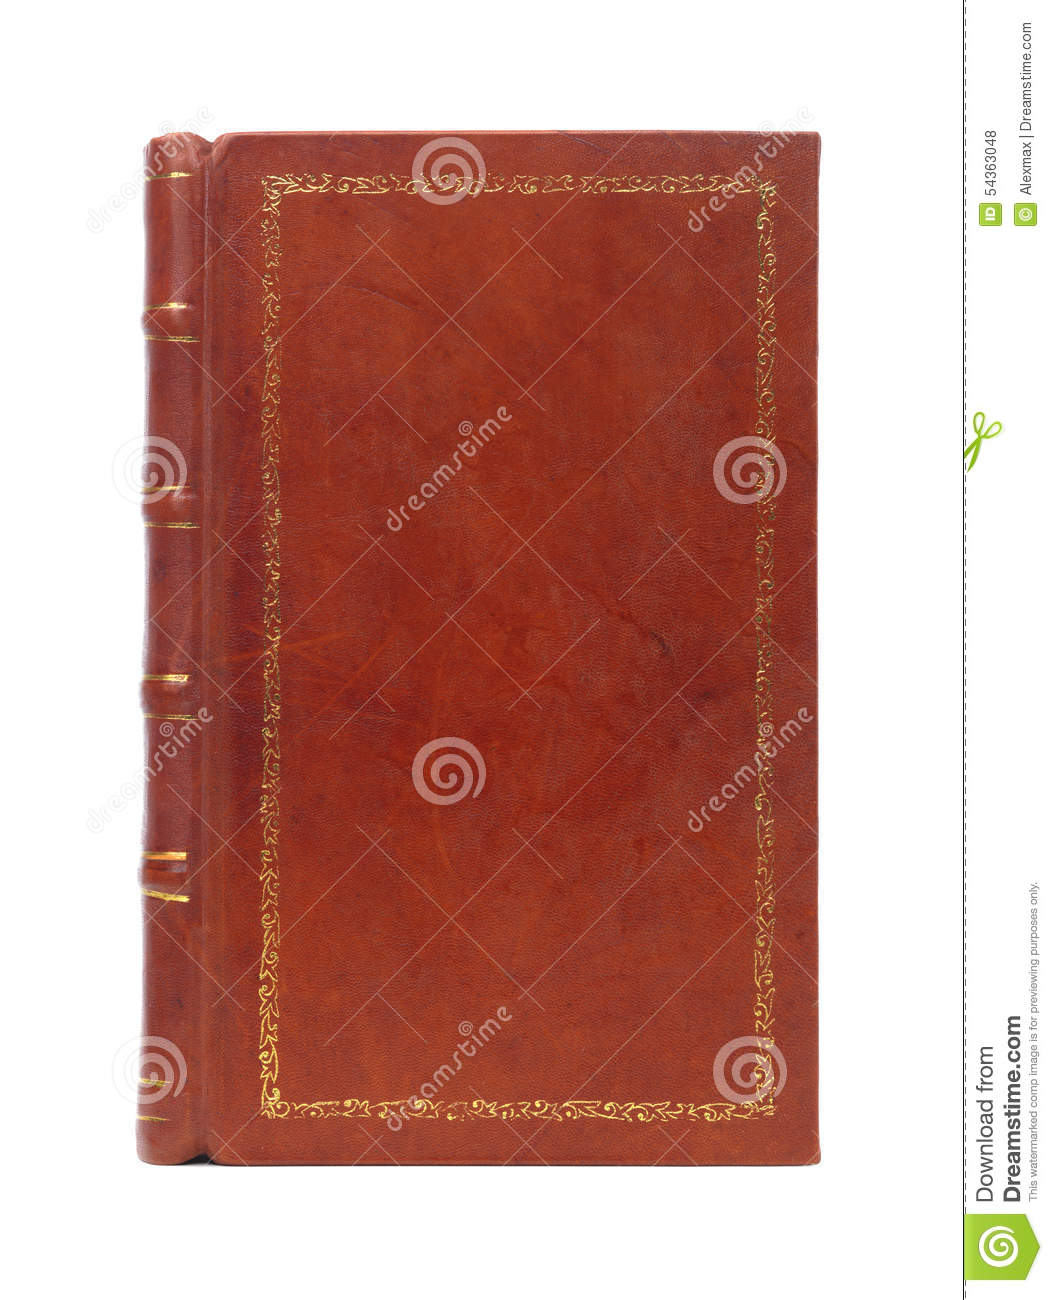 leather book cover background